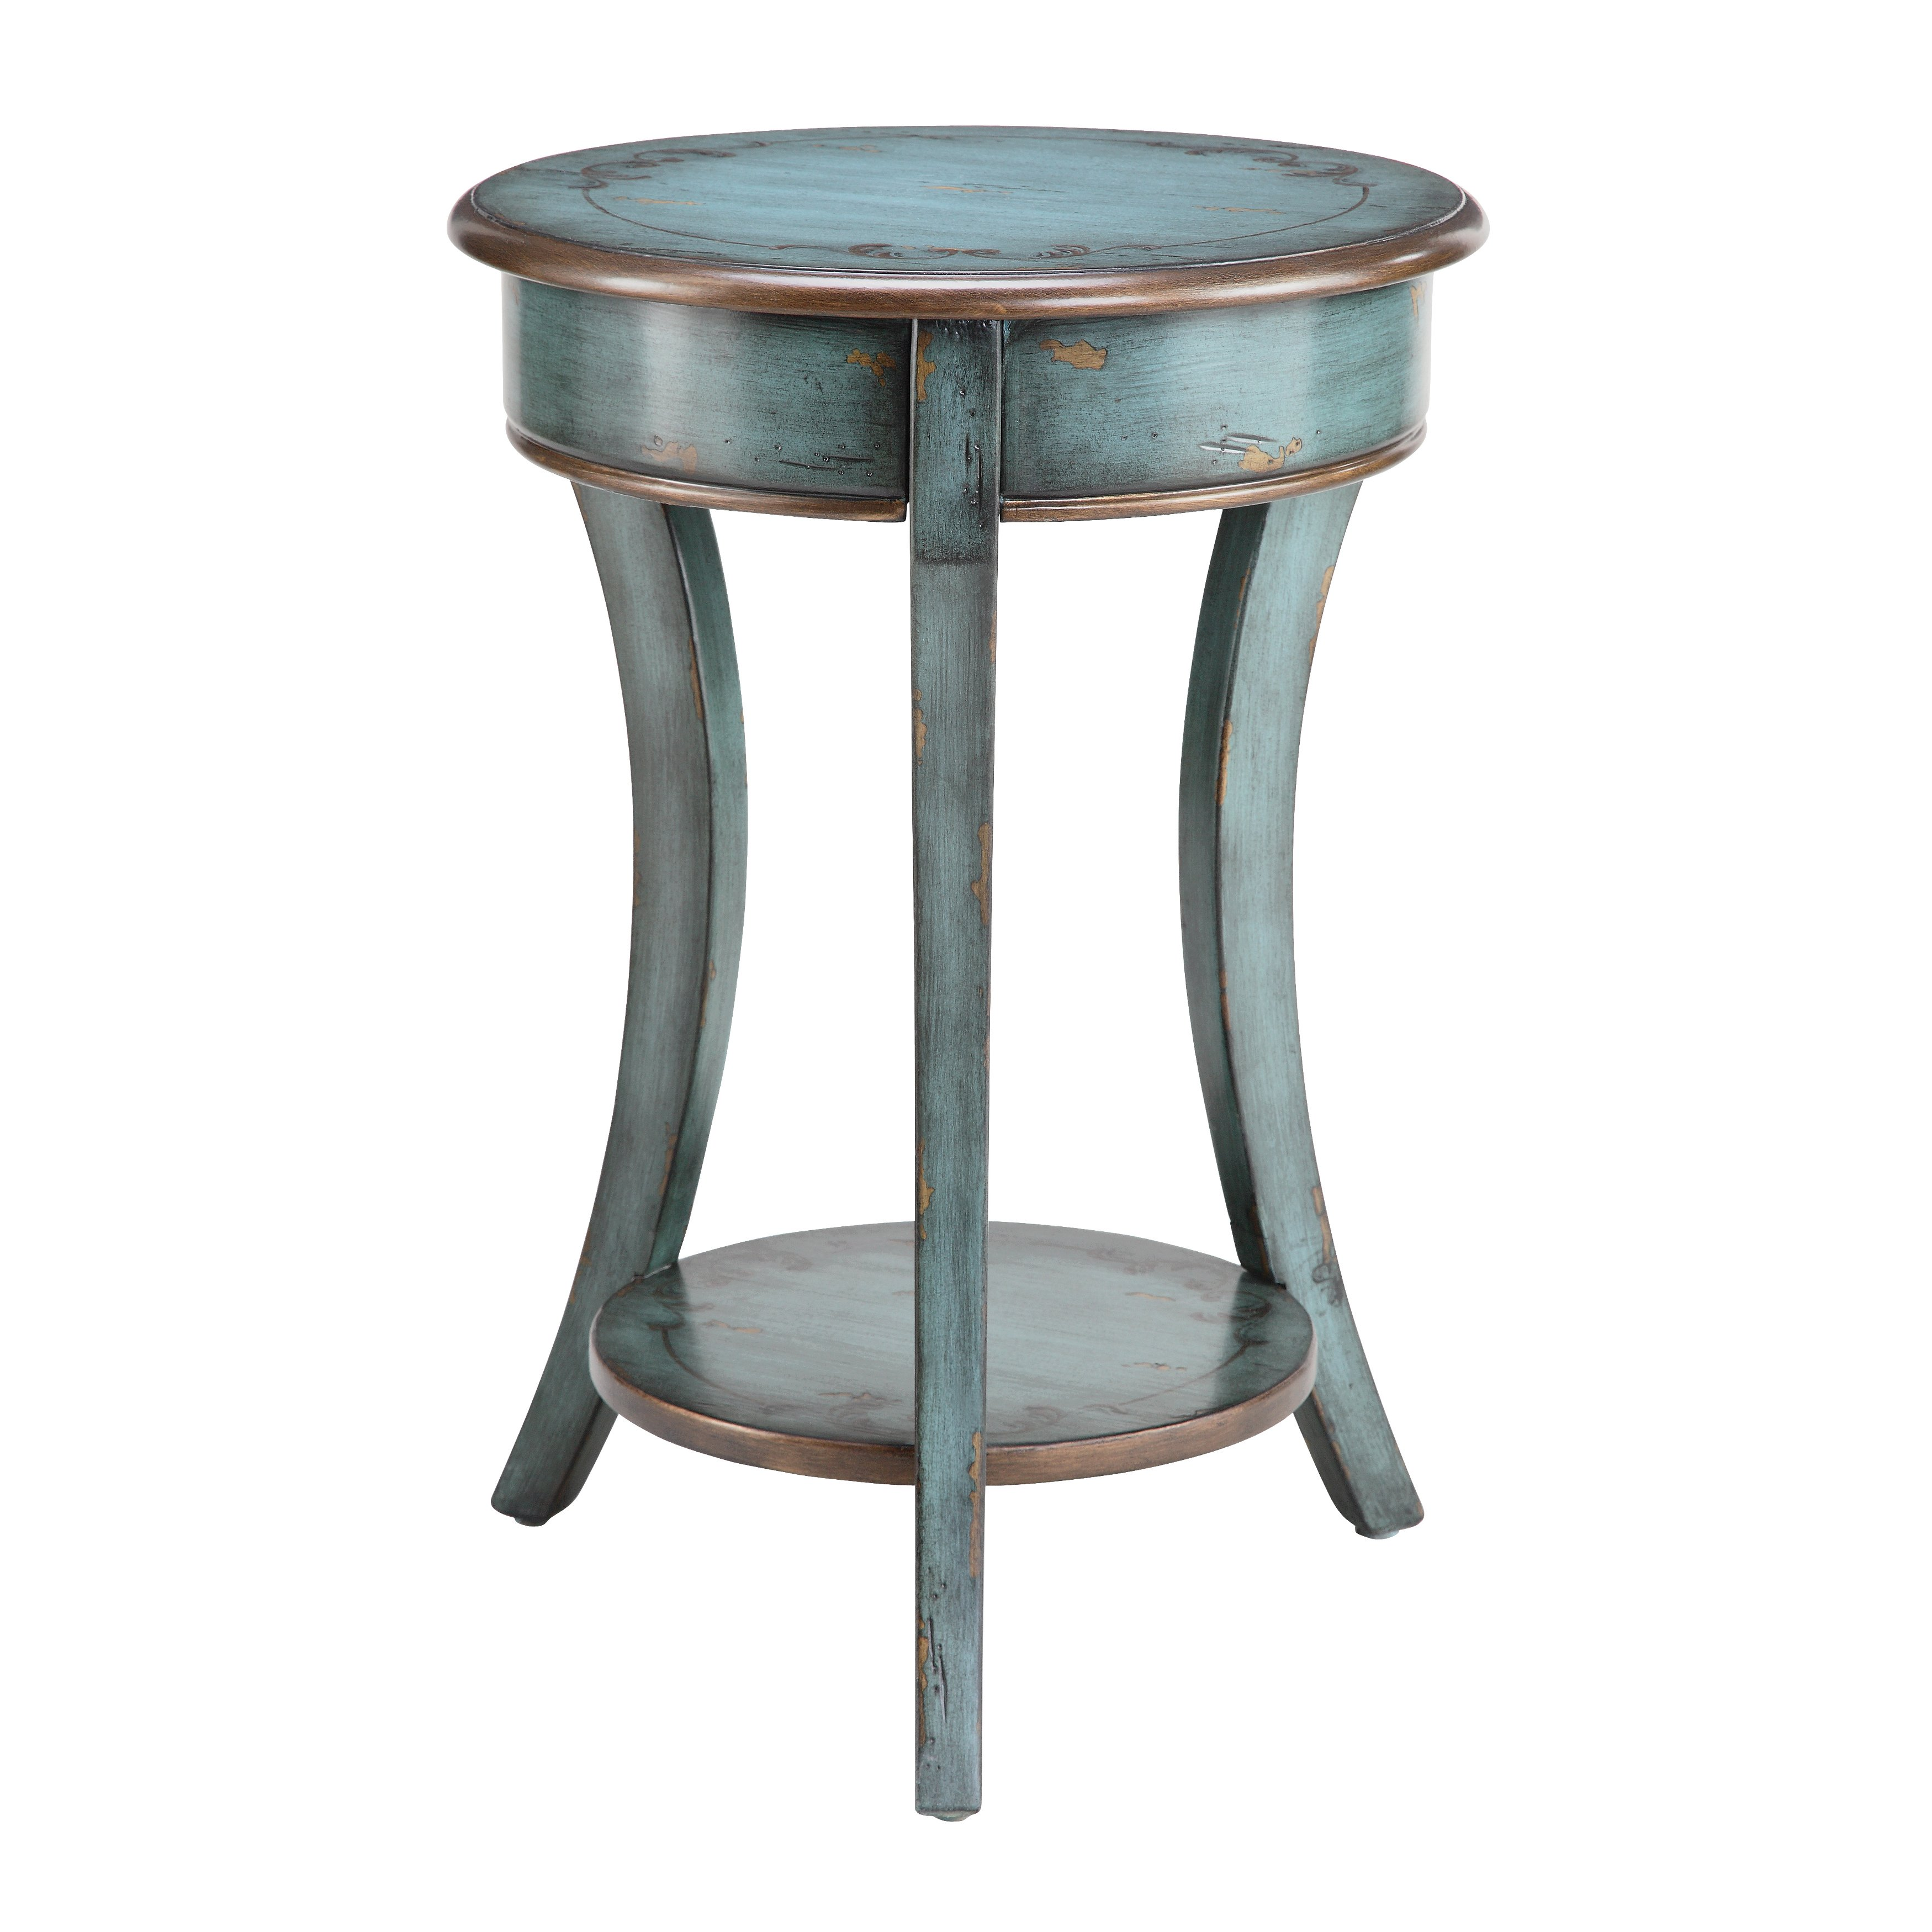 freya round accent table free shipping today iron end design plans bath and beyond ice cream maker broyhill side with usb nesting cocktail set outdoor chairs lounge furniture